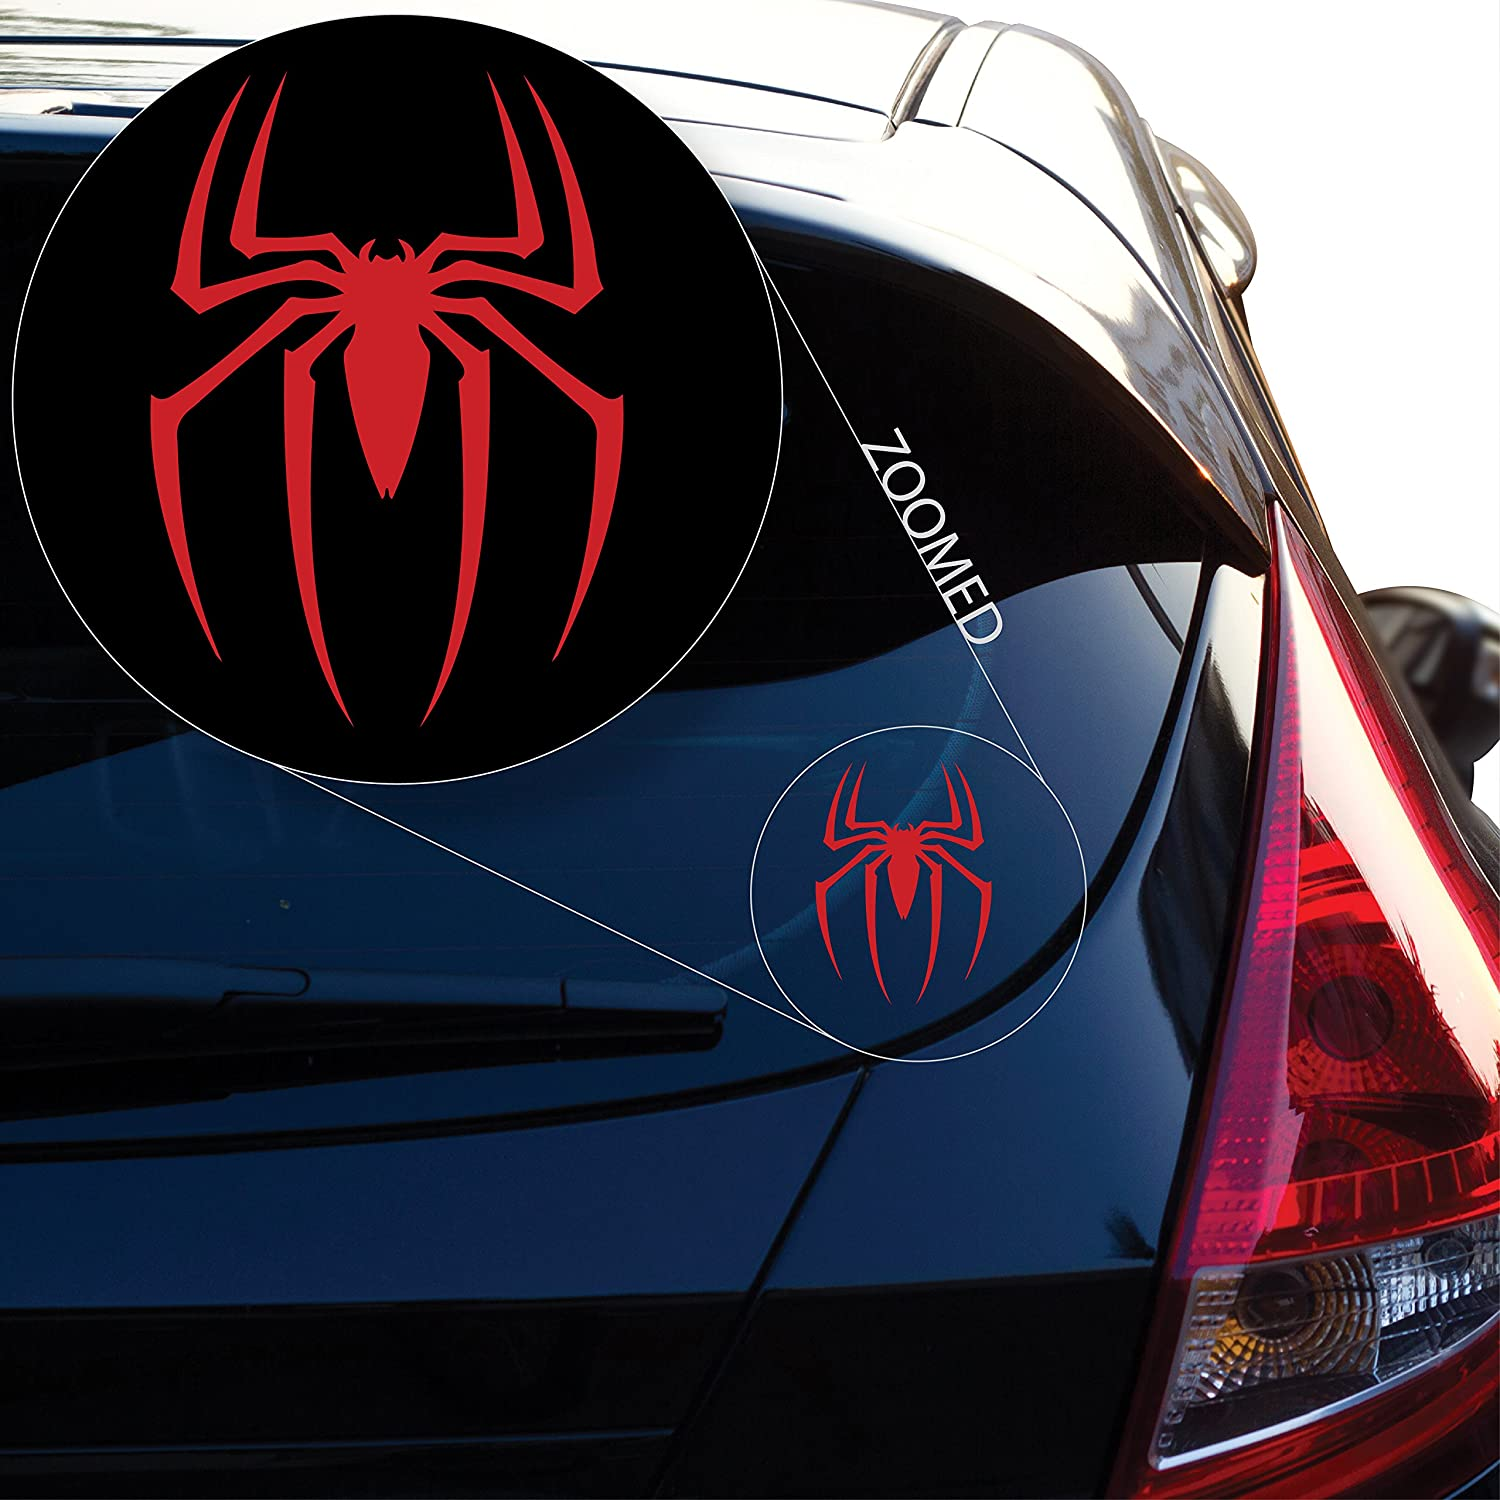 # 517 Yoonek Graphics Spider Man Decal Sticker for Car Window Laptop and More # 517 Laptop and More 12 x 8.6 12 x 8.6, Black